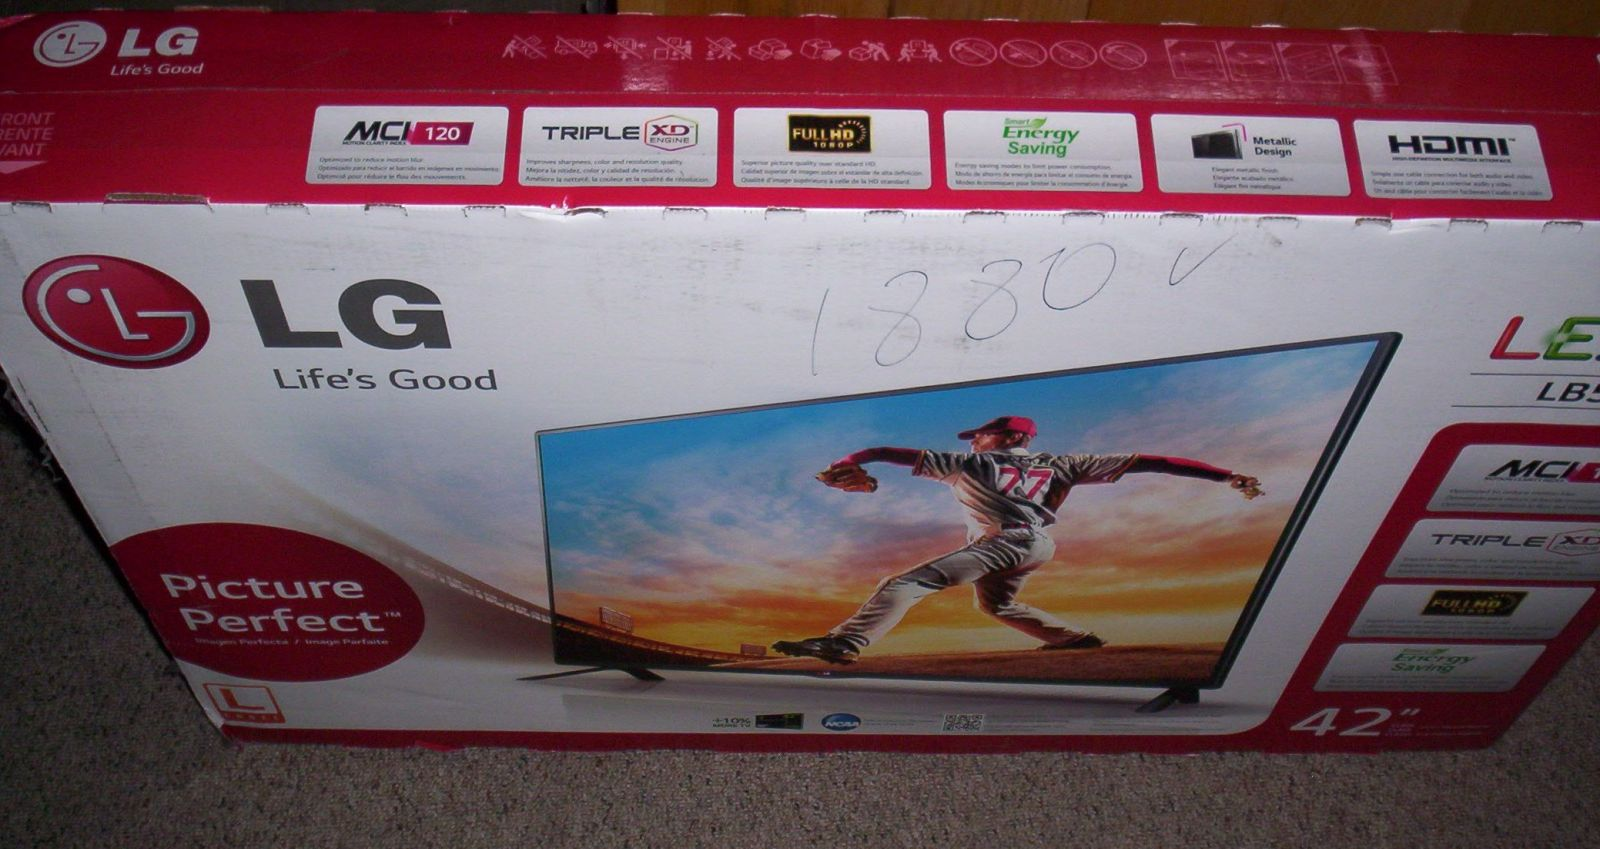 "FREE LG 42"" LED TV from Marlboro giveaway"